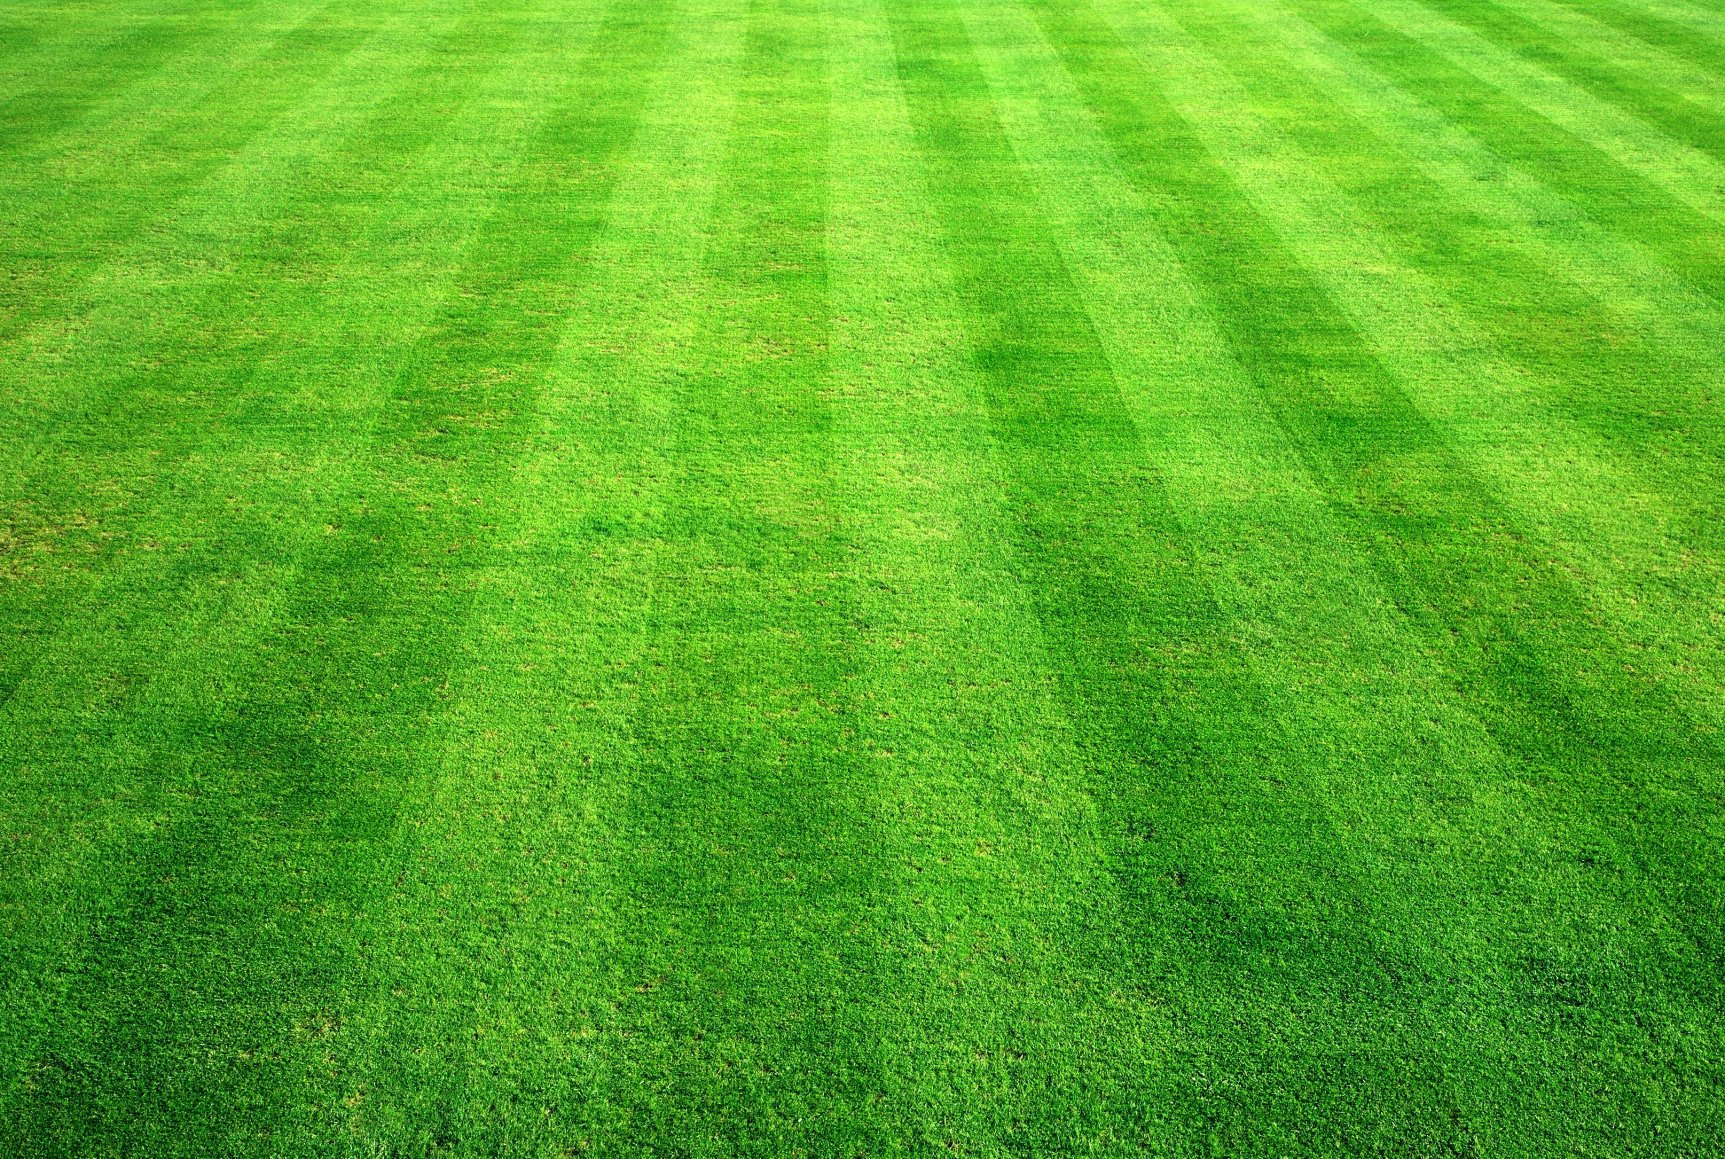 Gridiron Green Grass Background Texture Download Photo